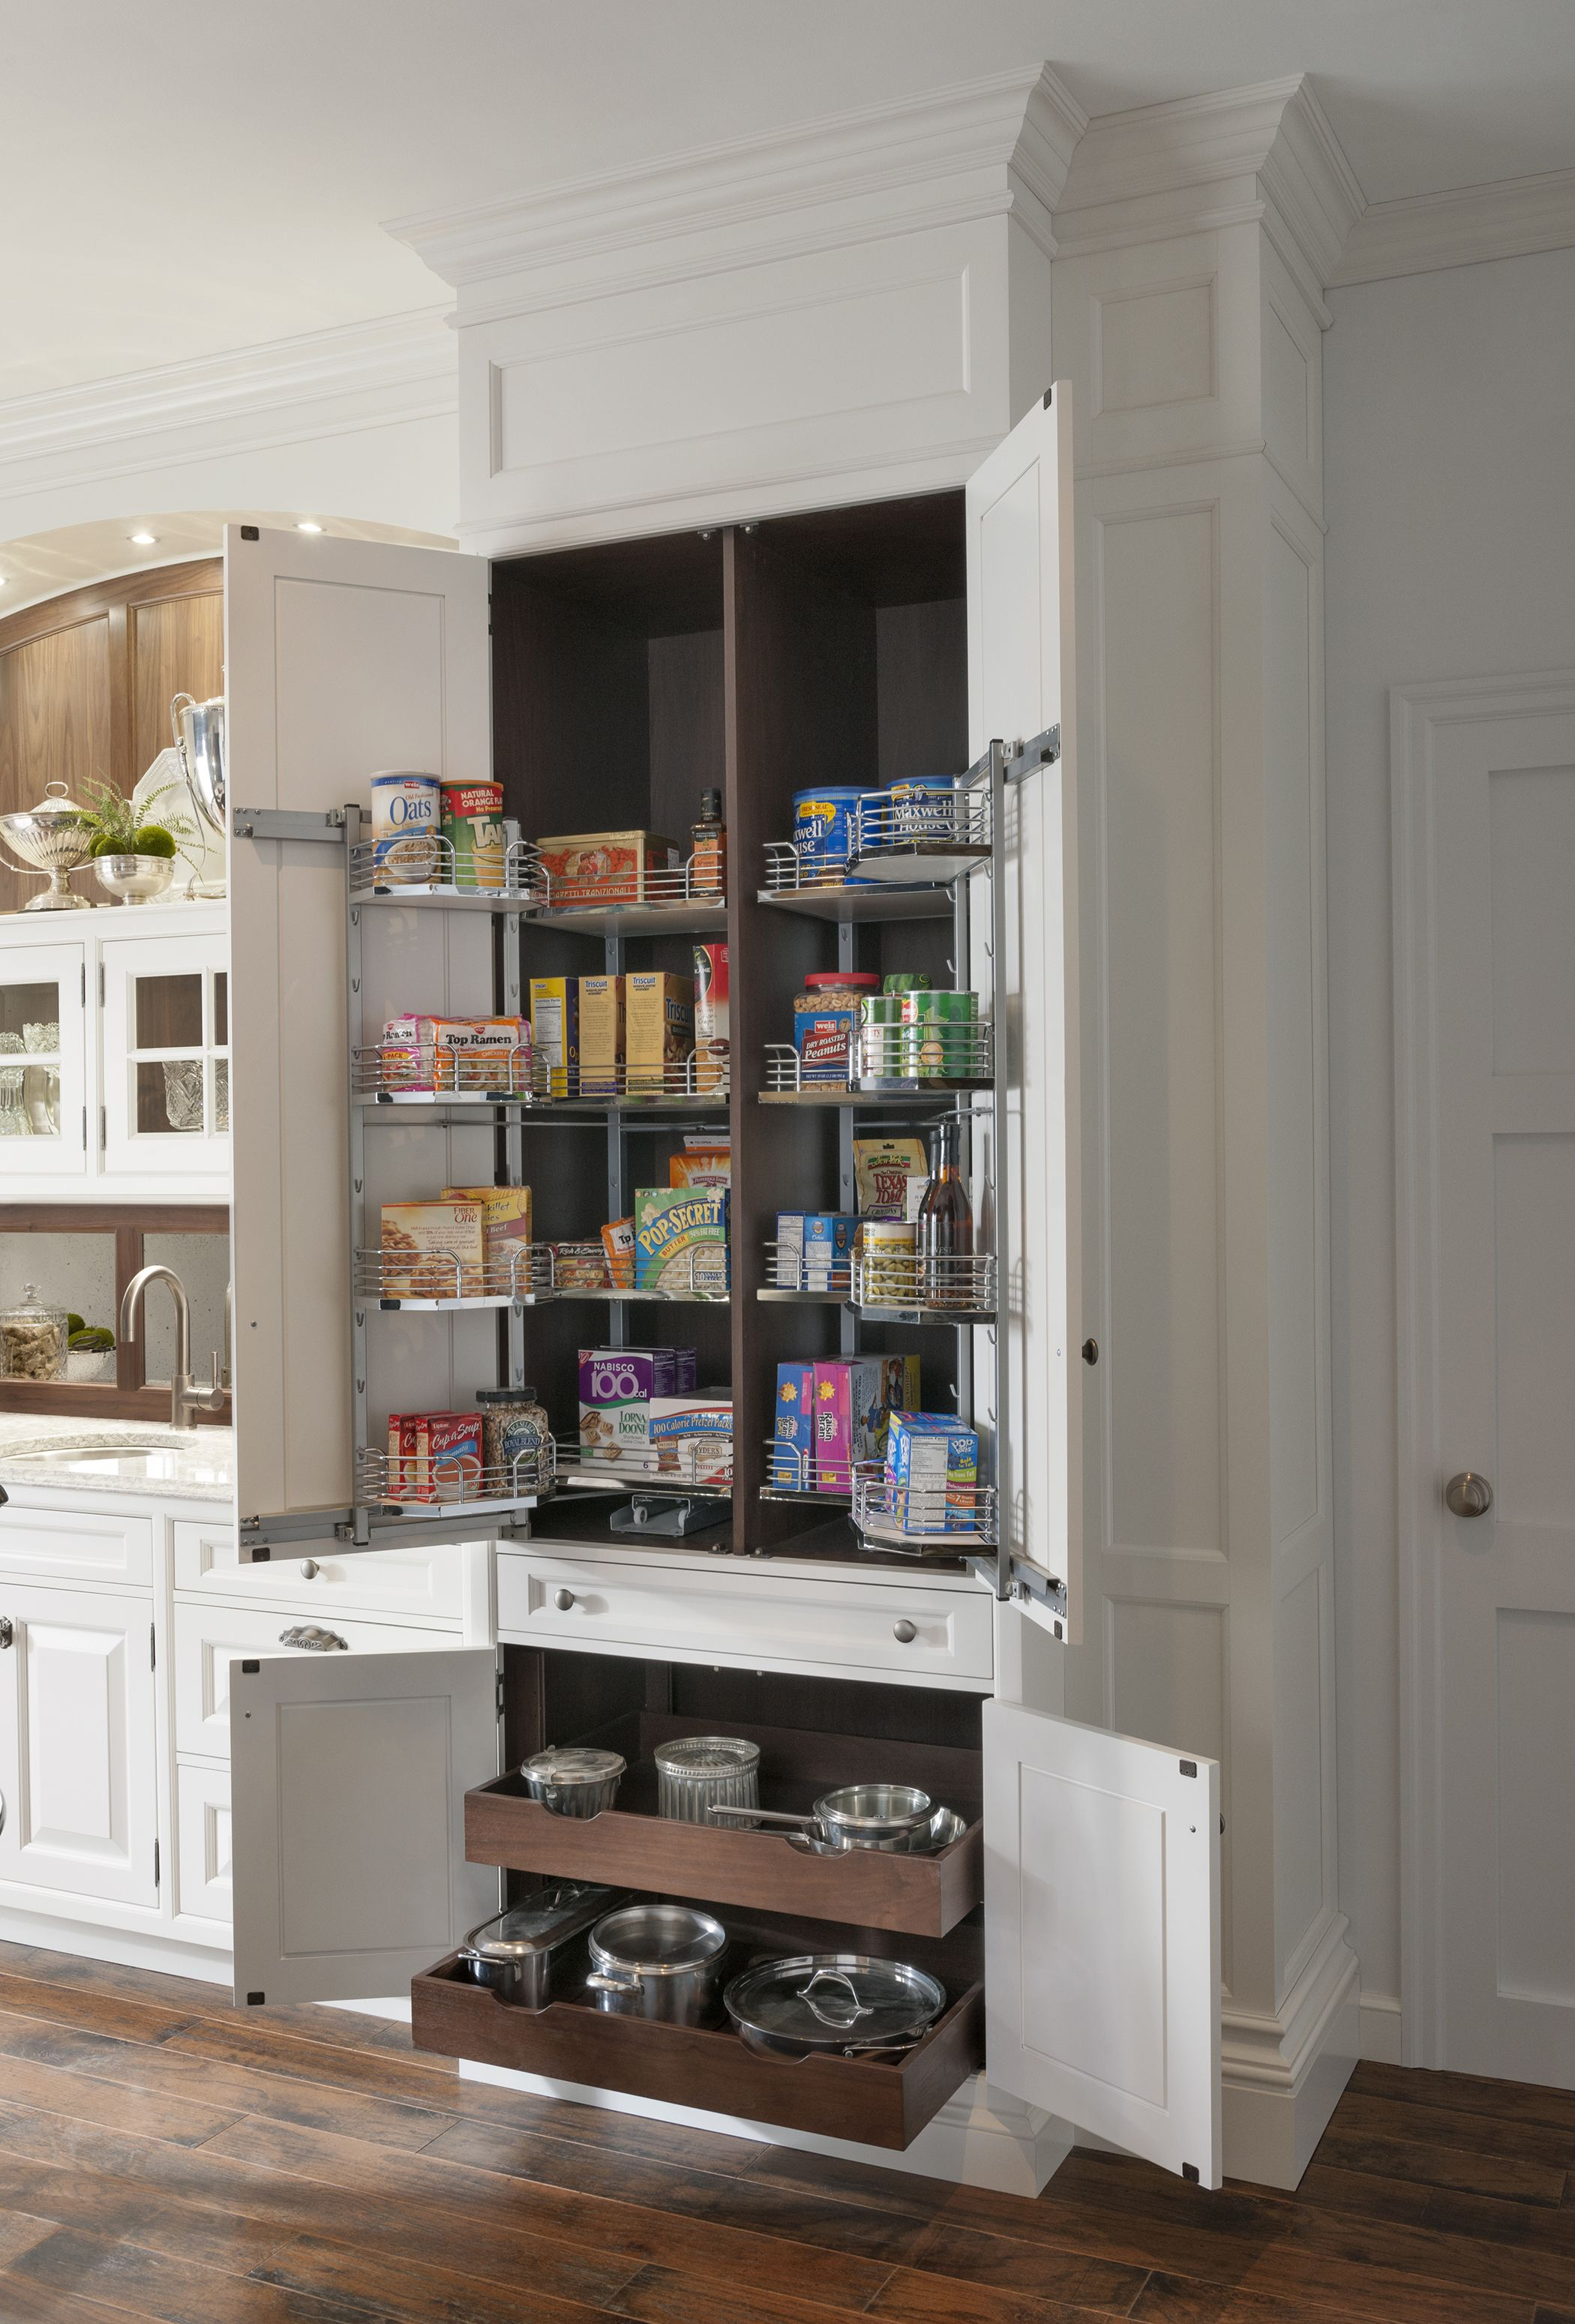 Agatha O - Tandem Chefs Pantry, As Shown In The